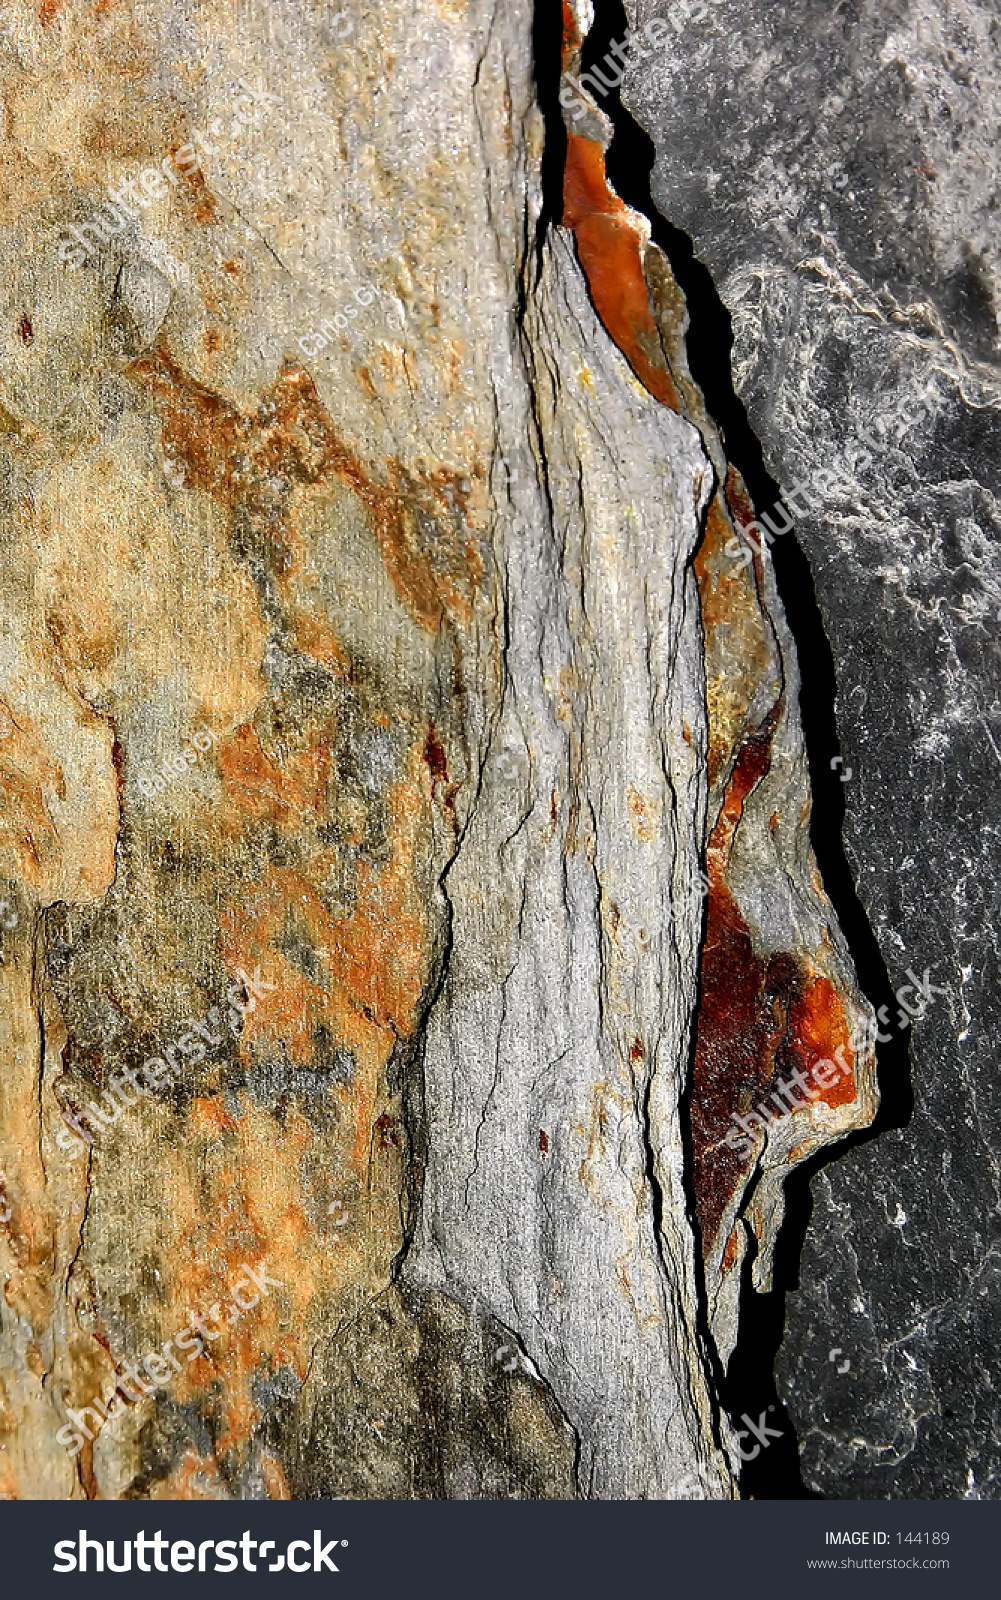 Red Shale Stone : Sedimentery shale stone stock photo shutterstock